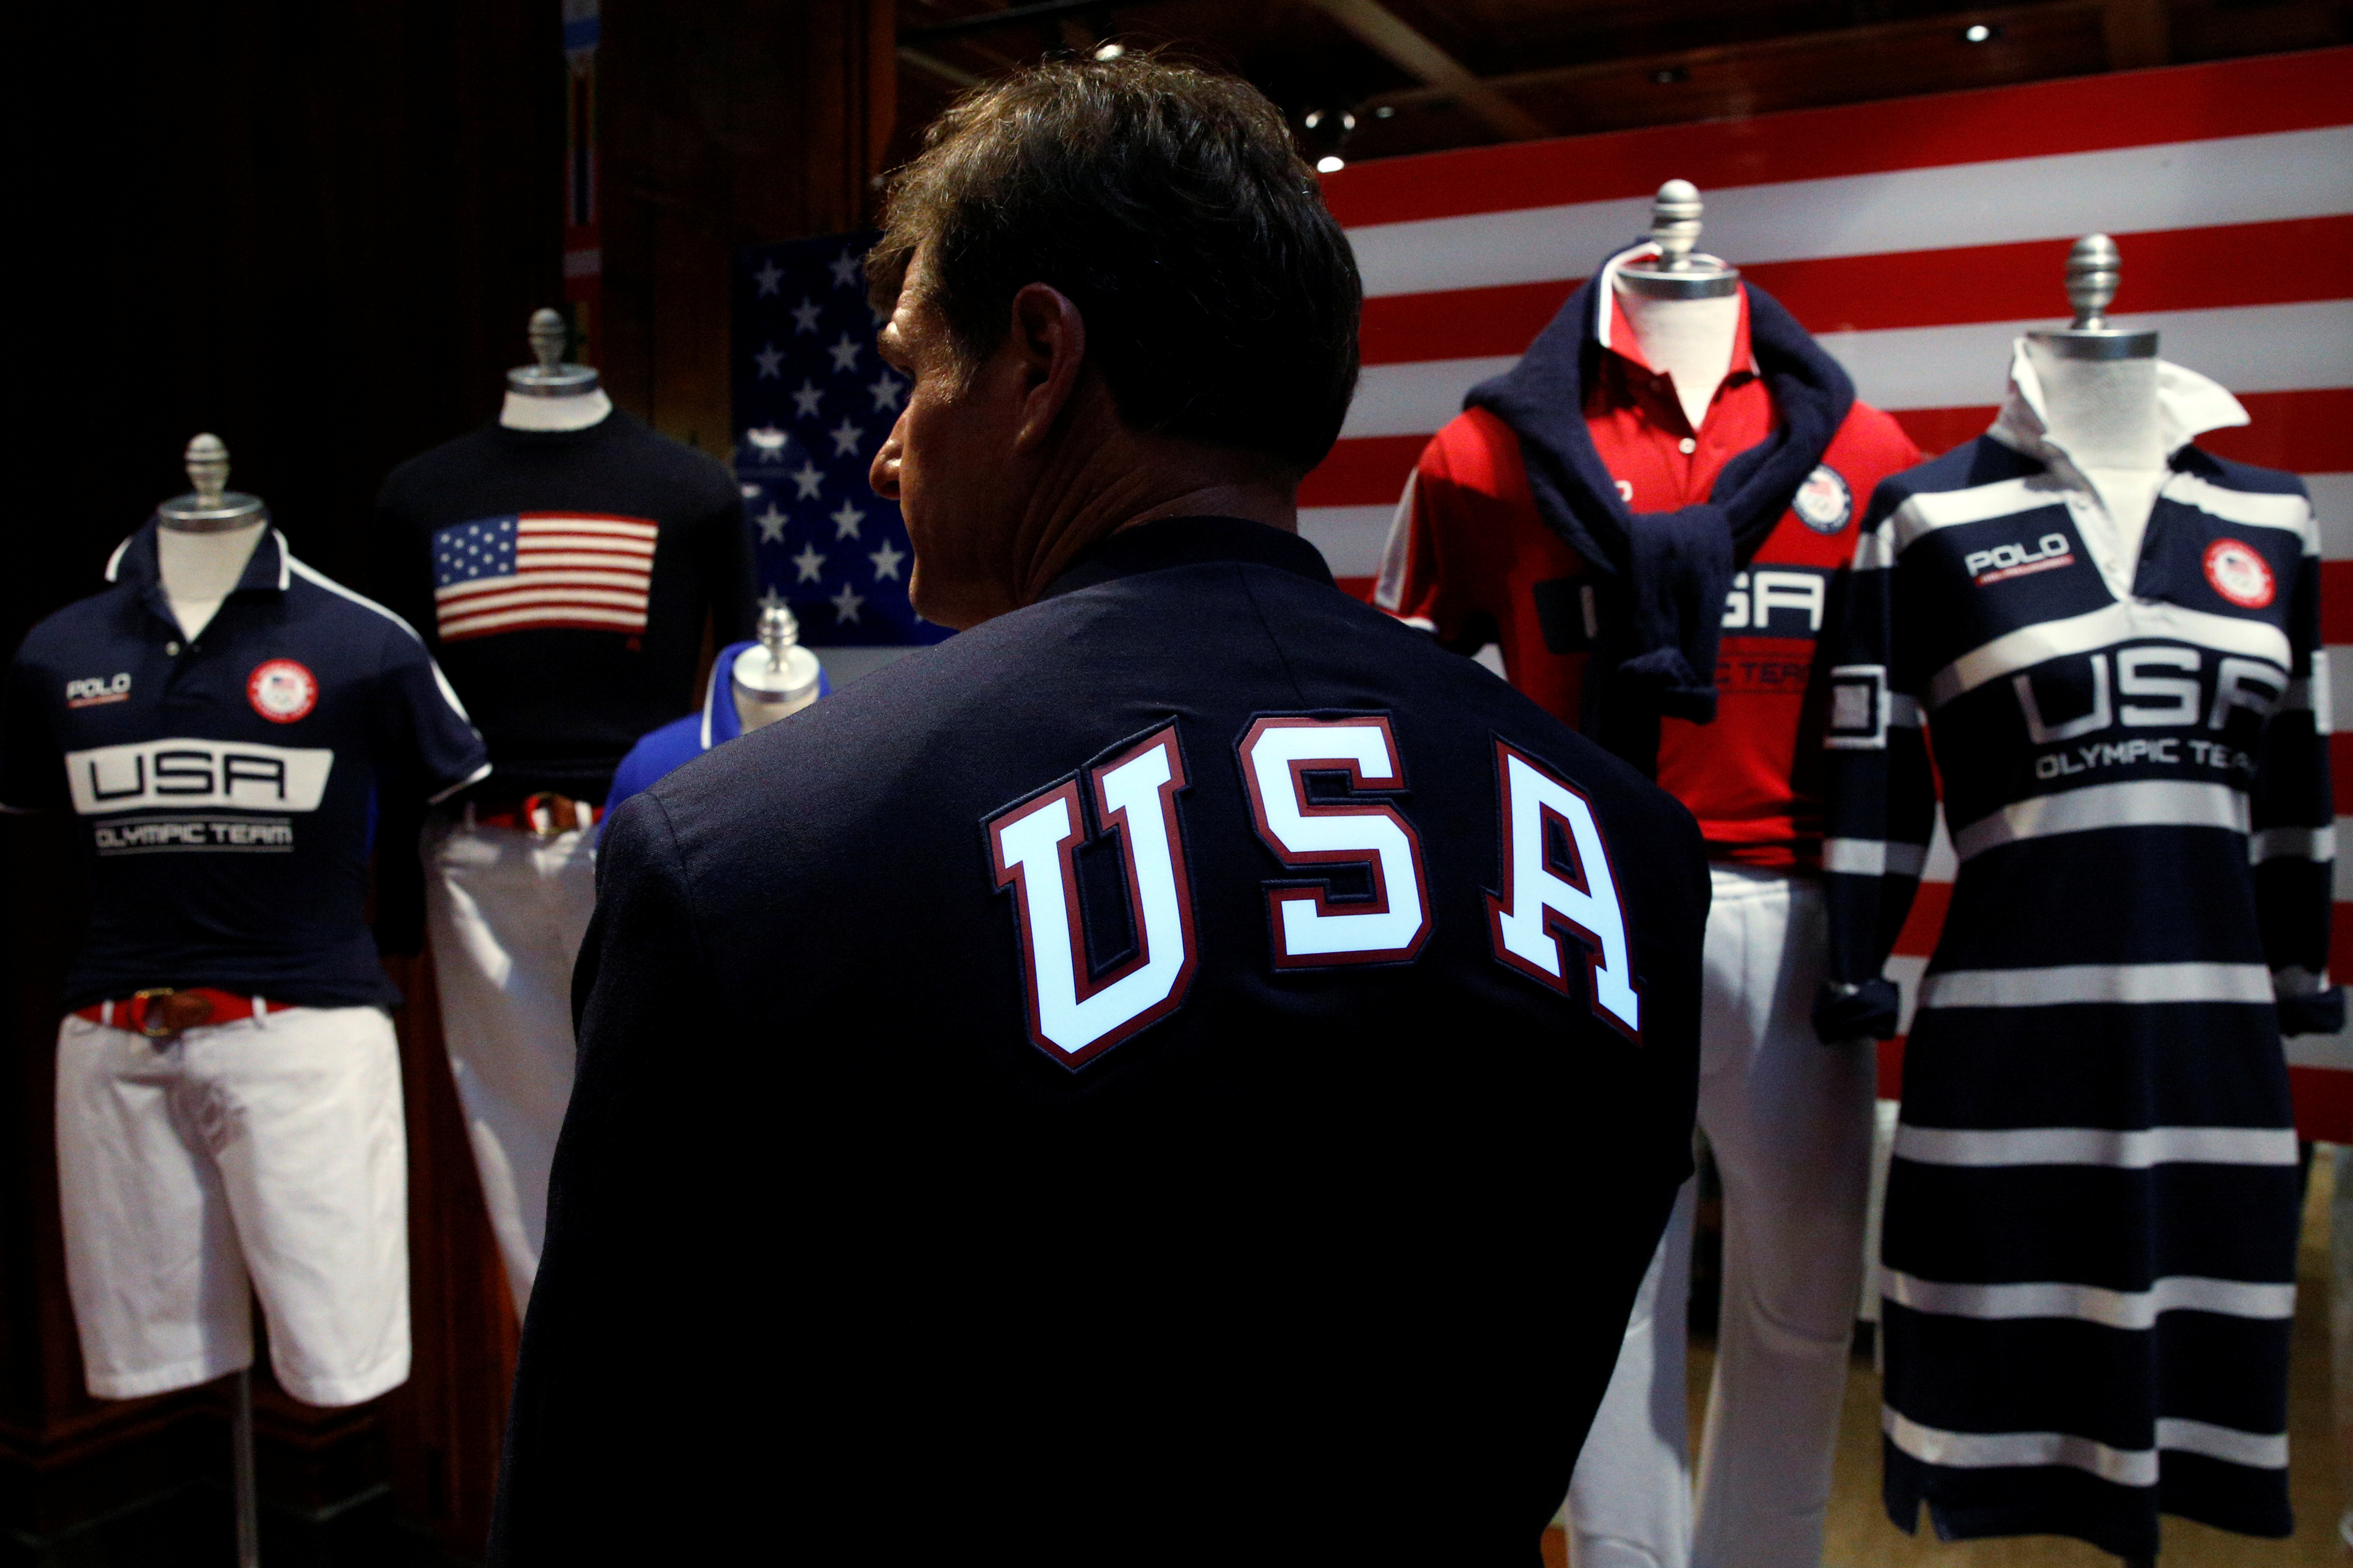 Ralph Lauren's Olympic Uniforms Are Patriotic, Made in